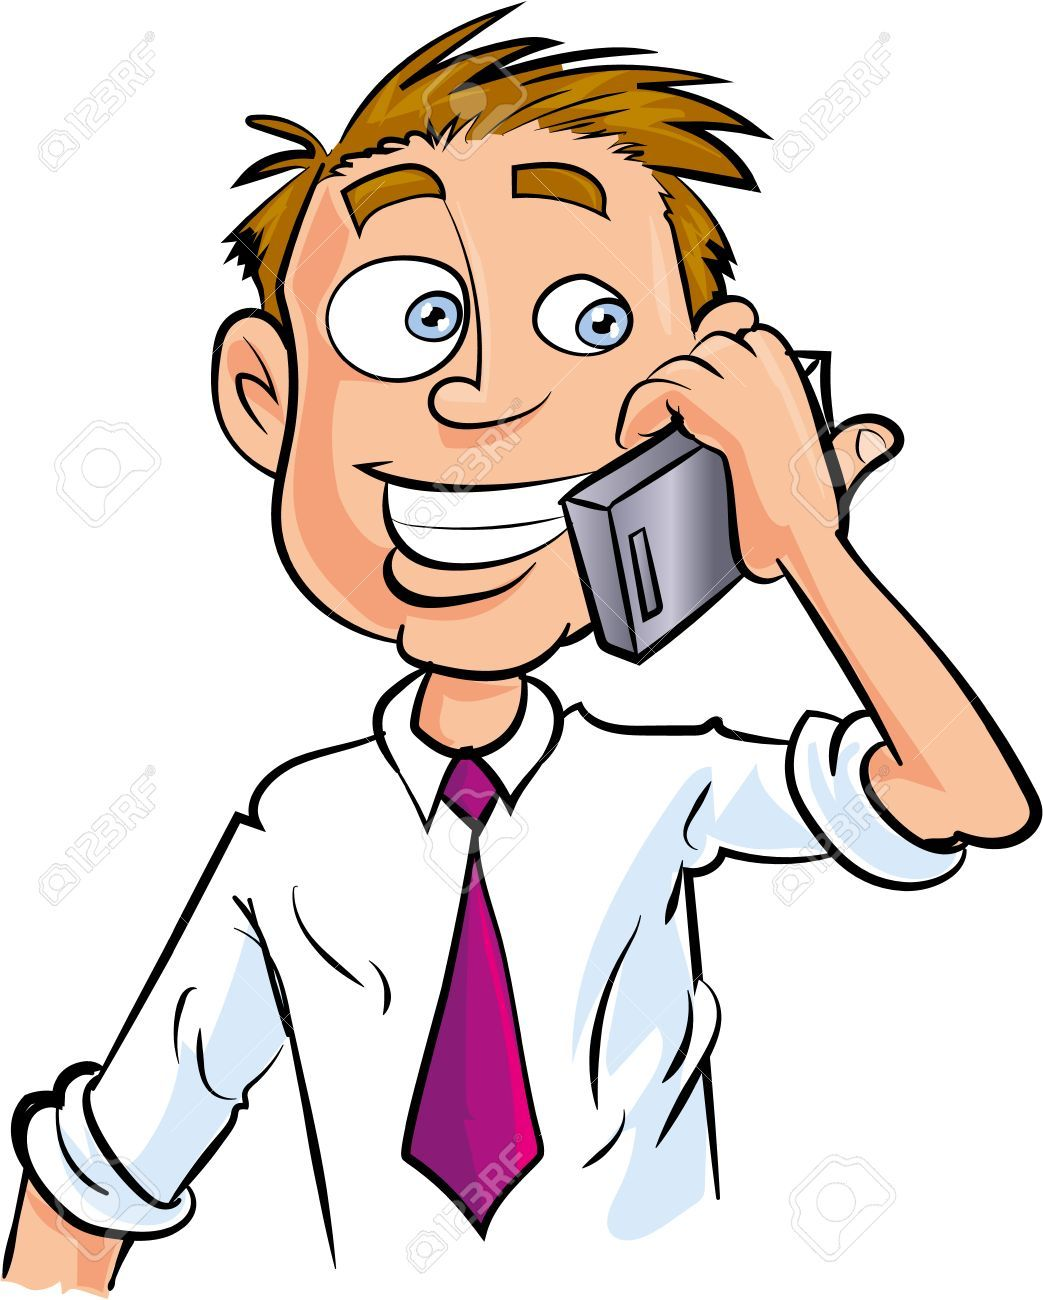 Cartoon office worker making phone call » Clipart Portal.